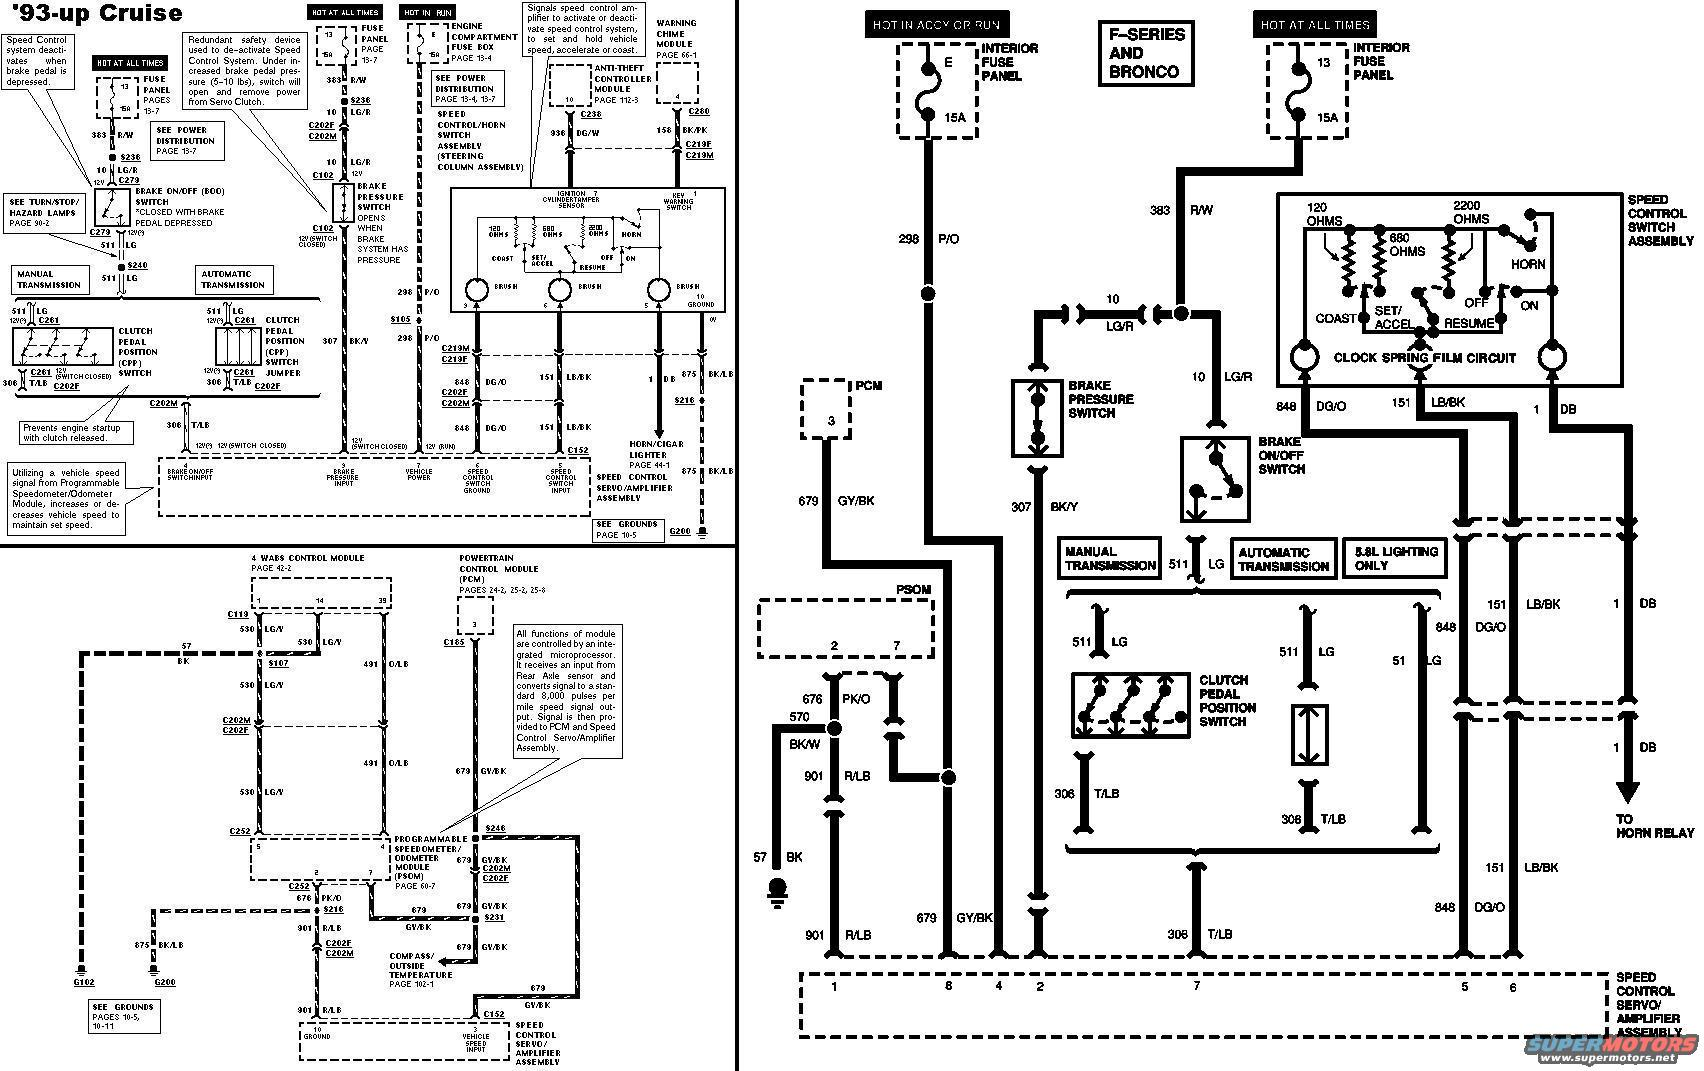 94 f150 light diagram wiring diagram photos for help your working